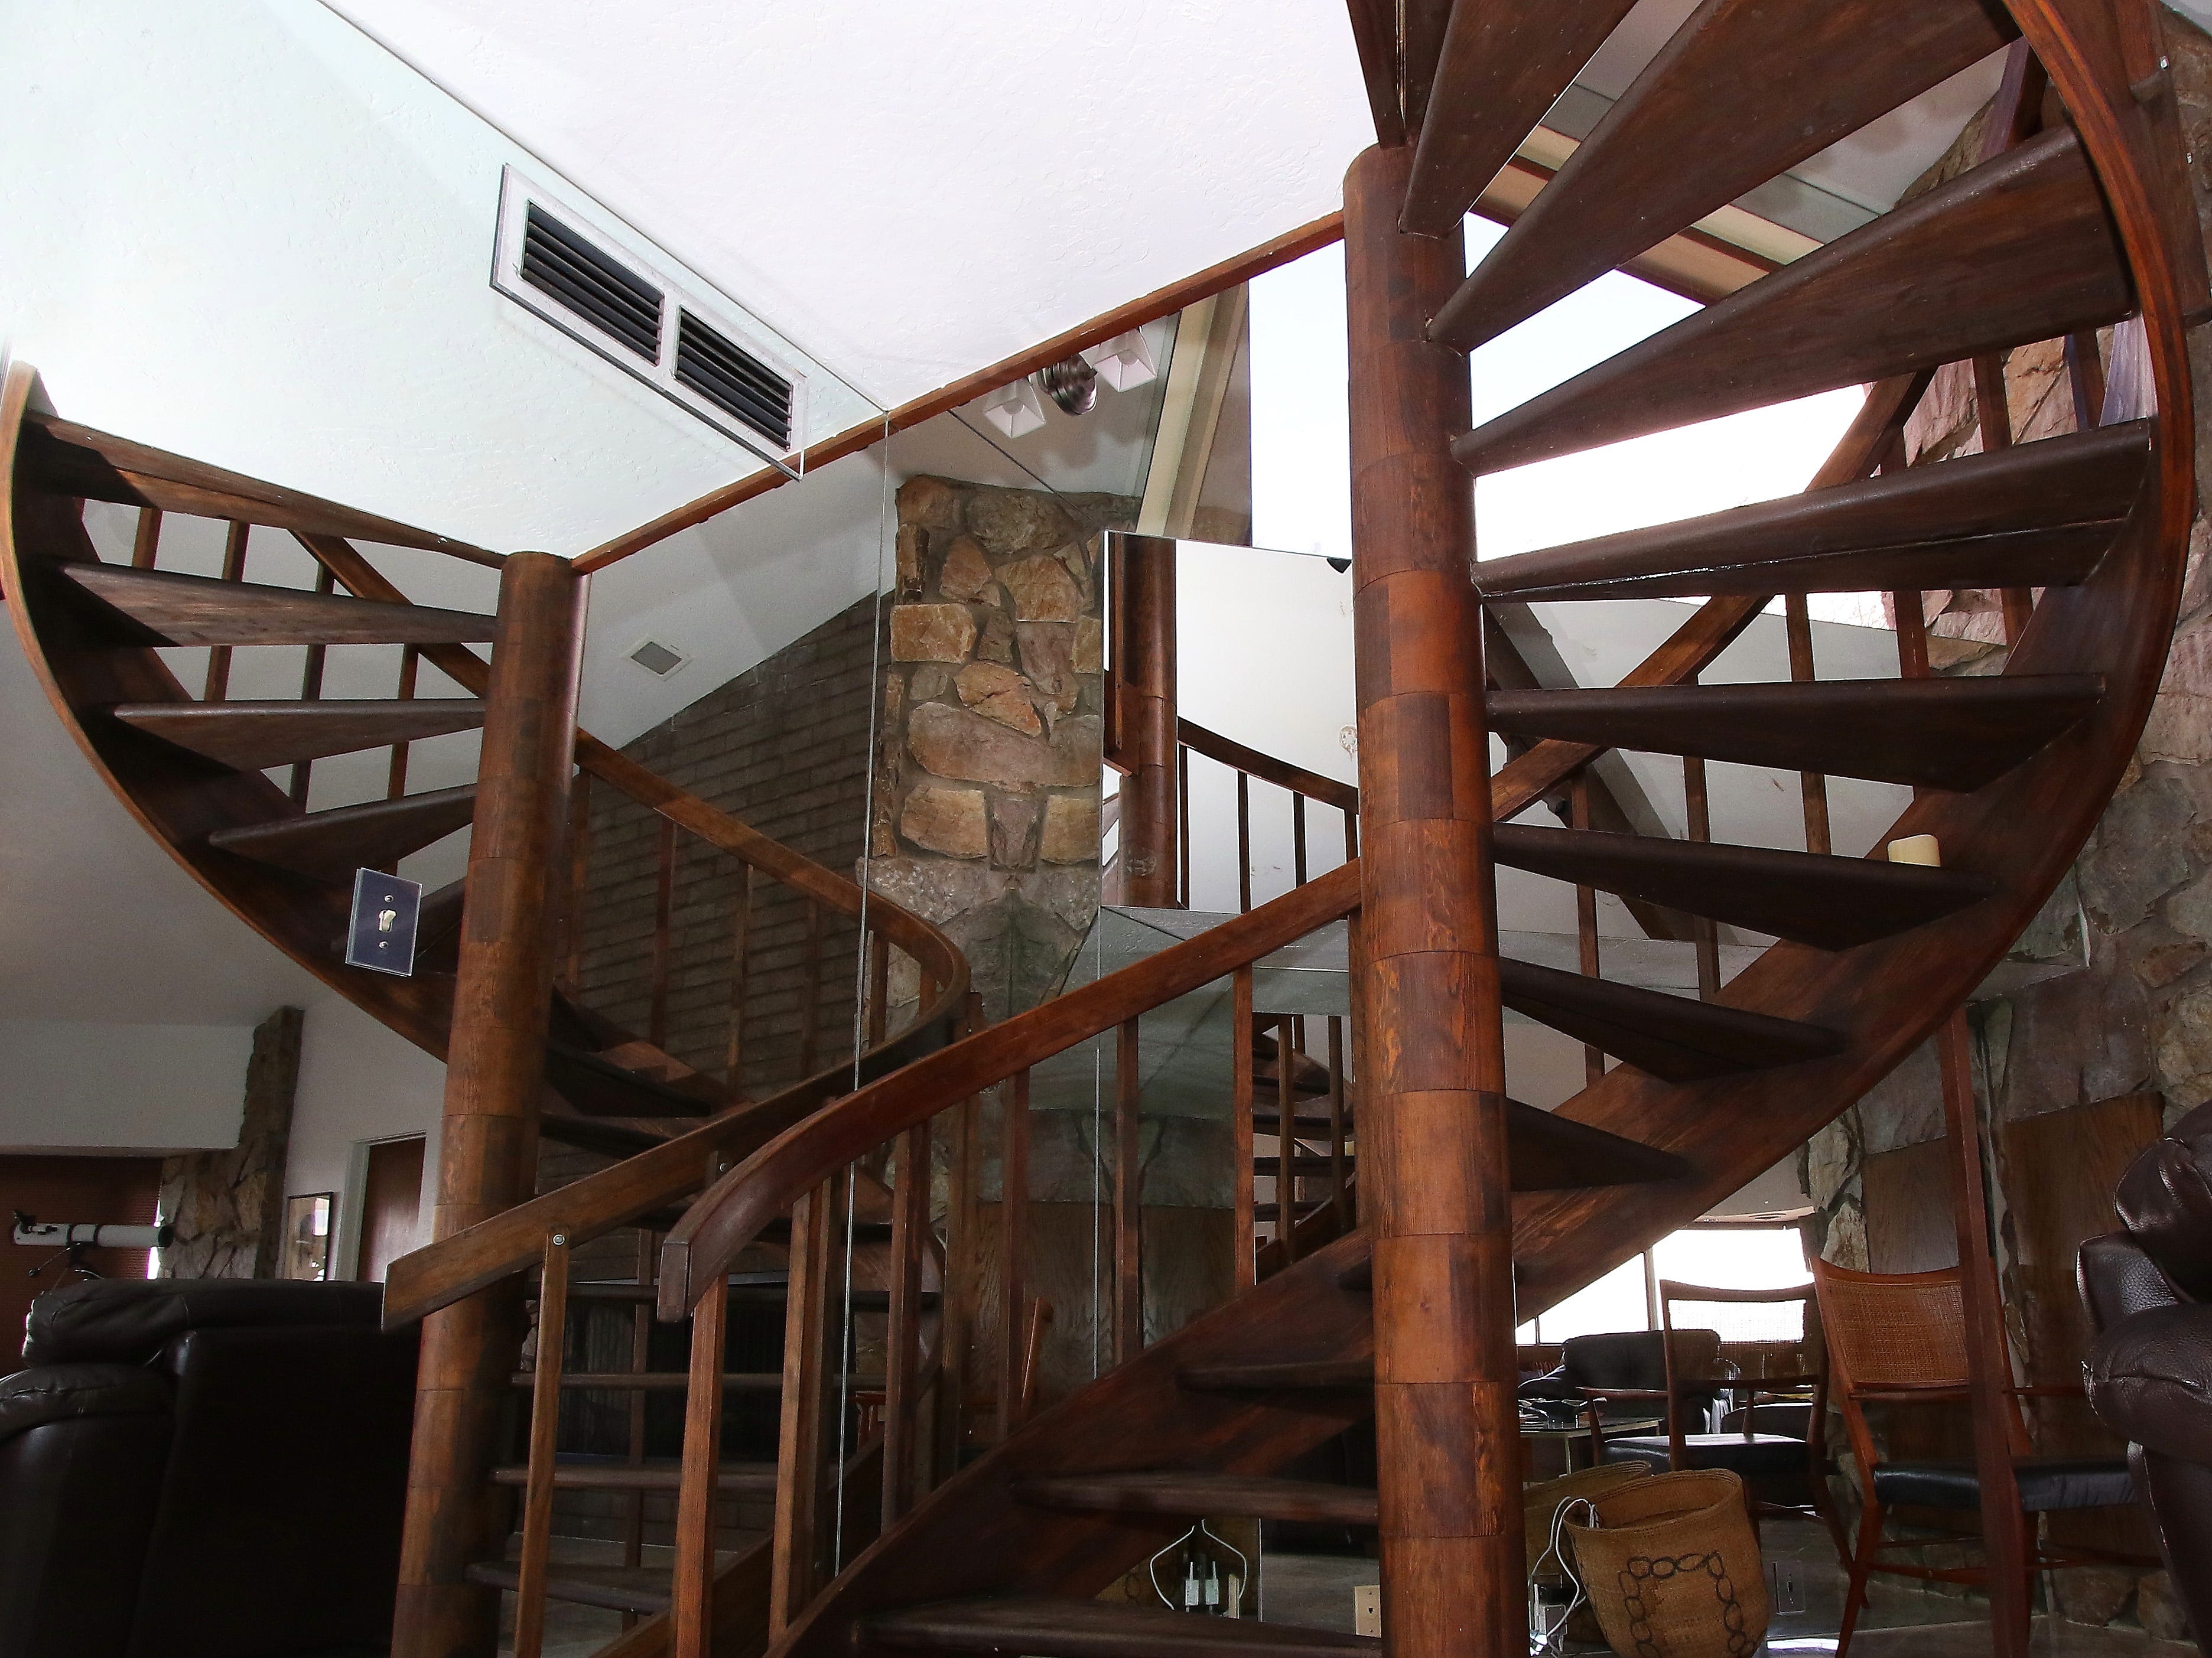 The wooden spiral staircase is set off by a backdrop of mirrors to make it appear as a series of staircases.